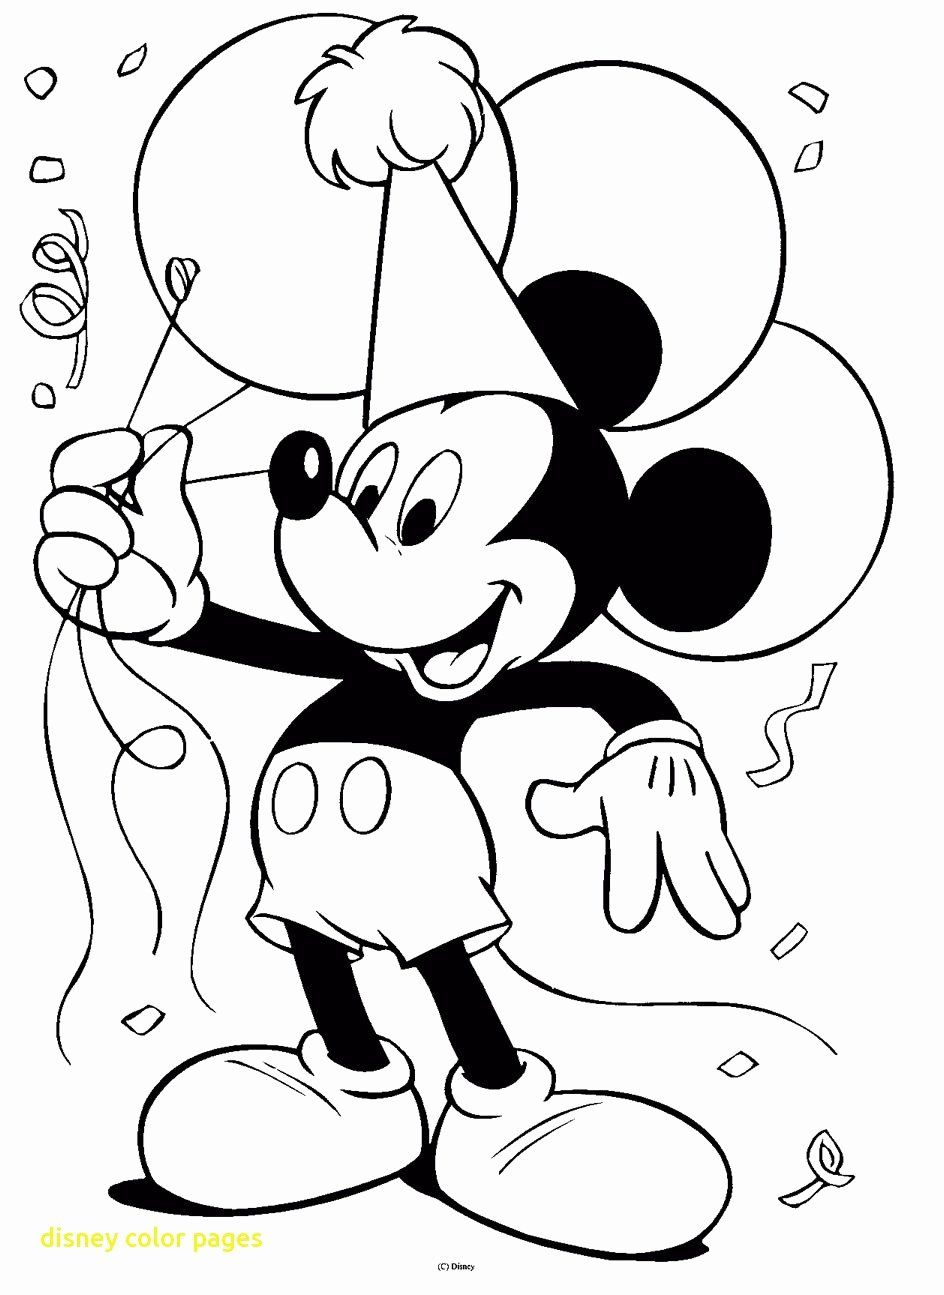 Mickey Mouse Online Coloring Inspirational Coloring Book Top Free Printable Tra Mickey Coloring Pages Mickey Mouse Coloring Pages Happy Birthday Coloring Pages